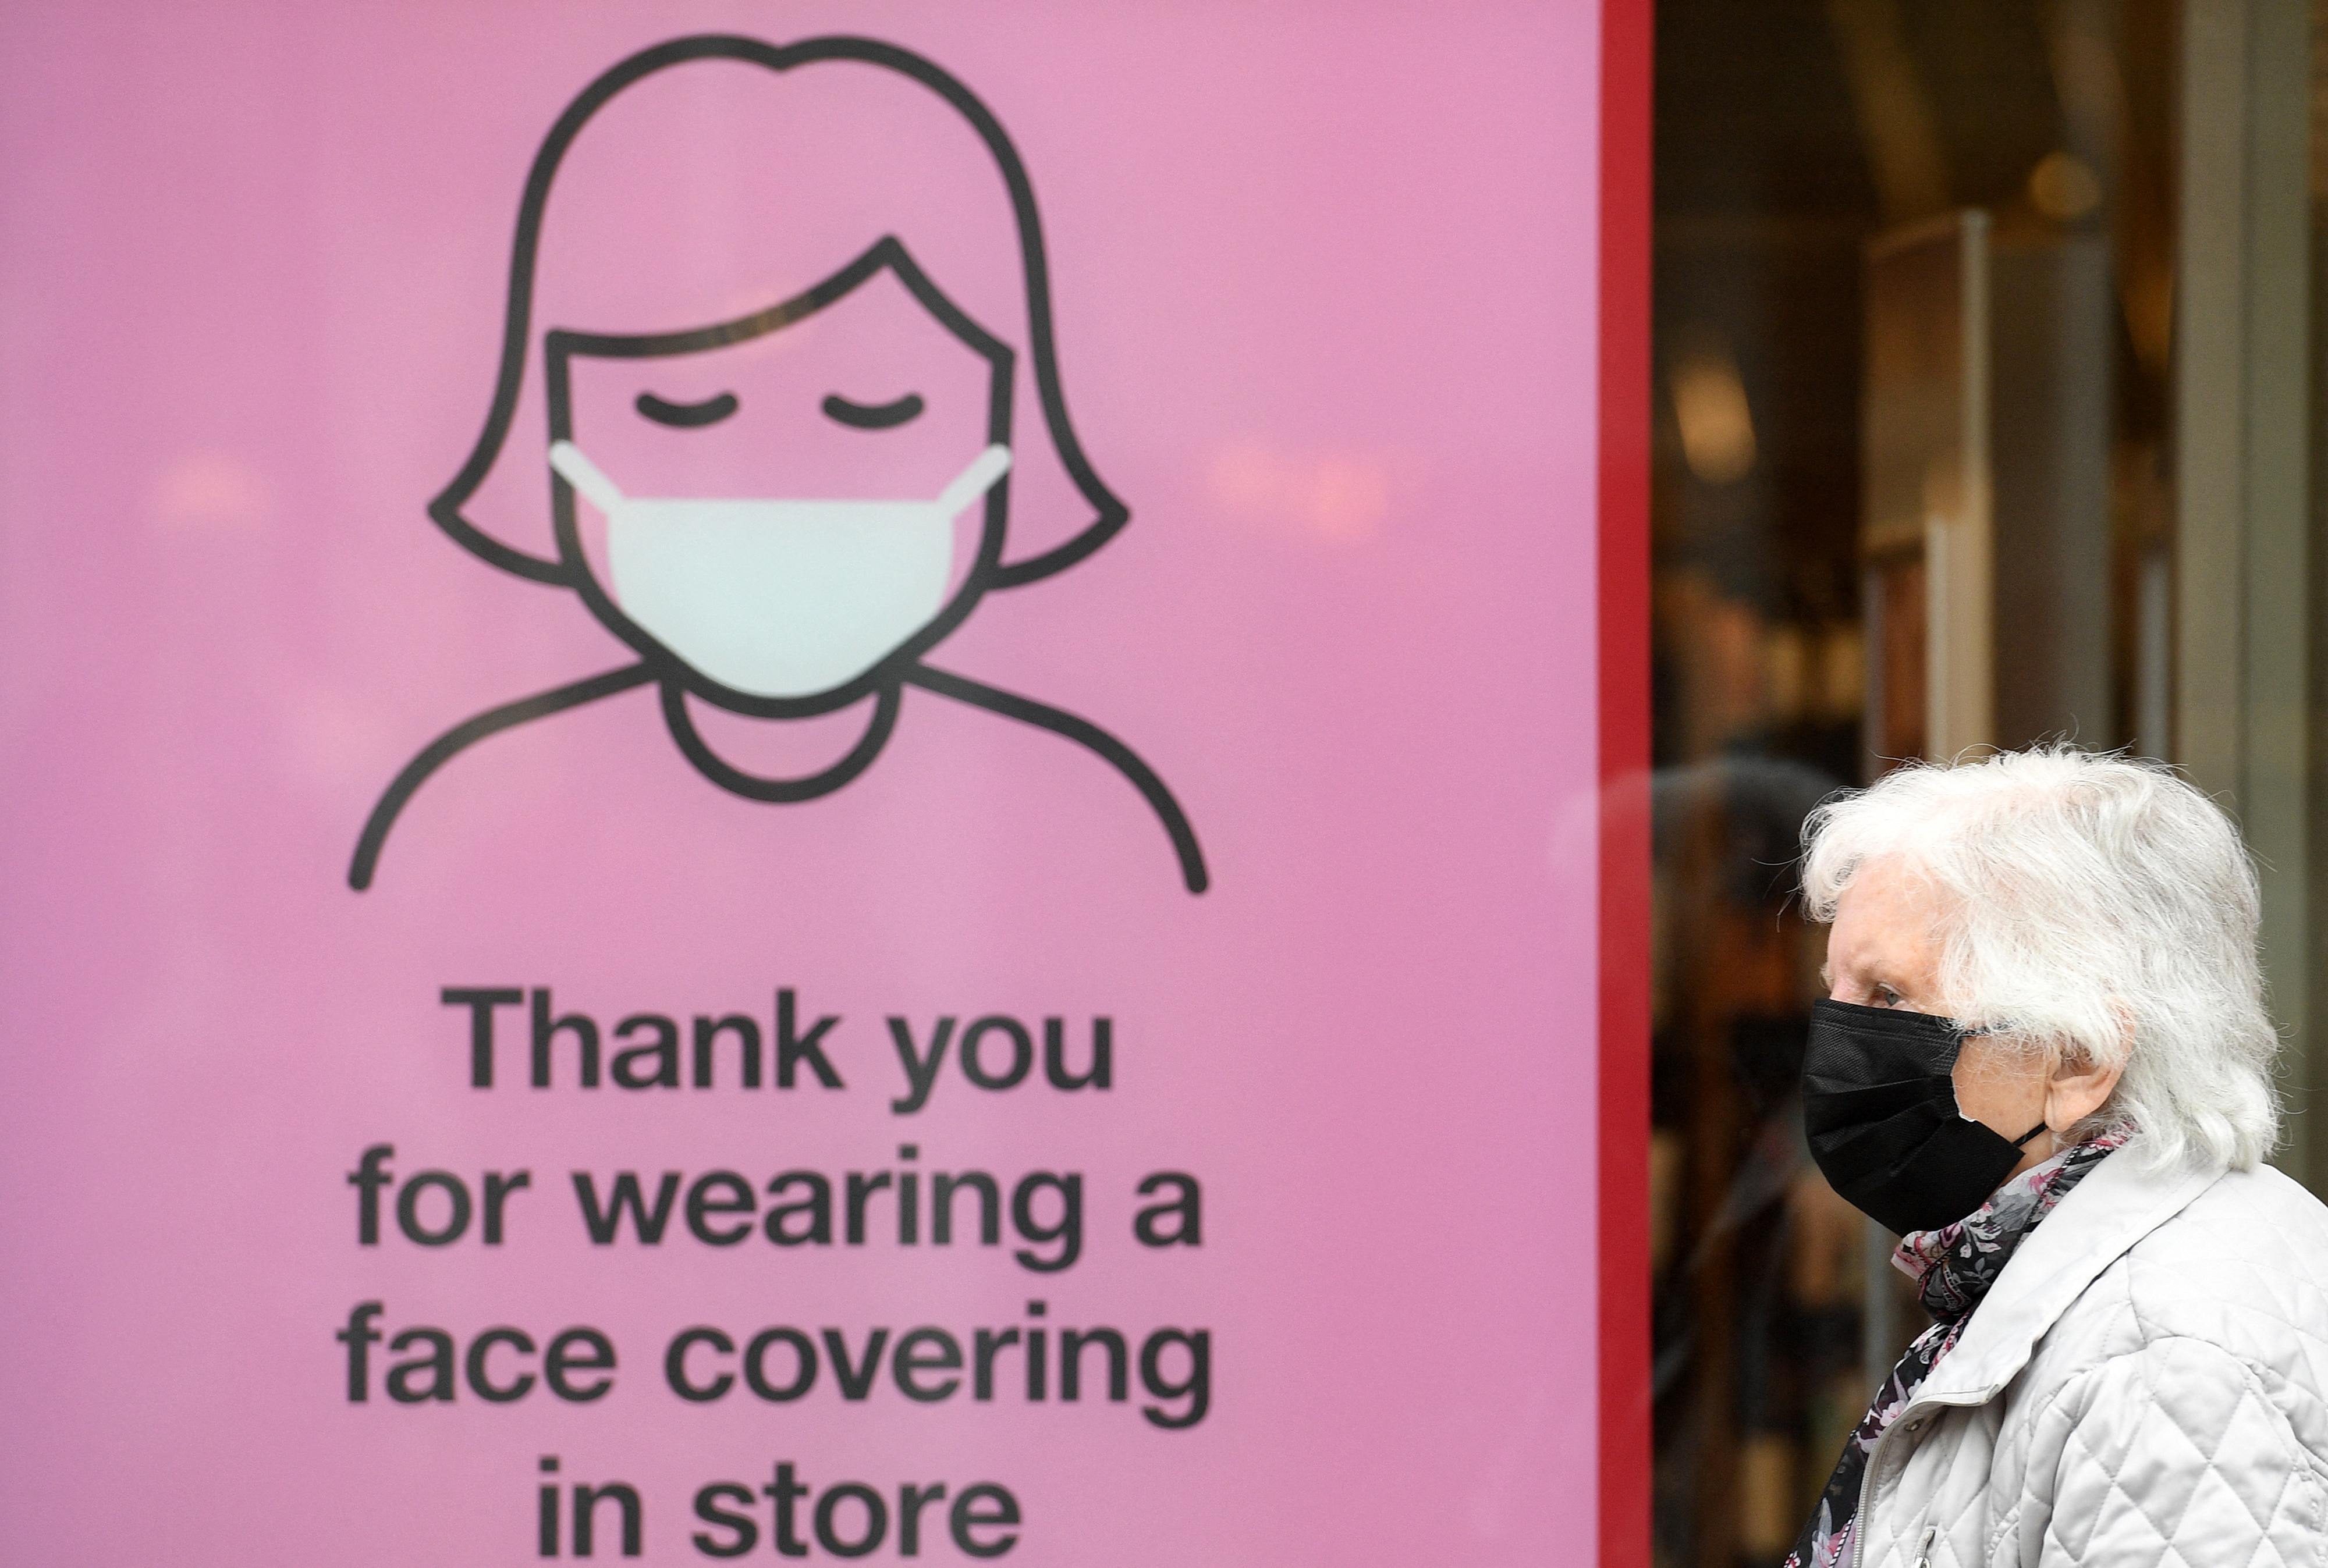 <p>A members of the public wearing a face mask passes a sign asking shoppers to face coverings inside the store, in Cumbria, north west England on June 21, 2021, where surge testing has been deployed following an outbreak of a coronavirus variant of concern. (Photo by Oli SCARFF / AFP) (Photo by OLI SCARFF/AFP via Getty Images)</p>